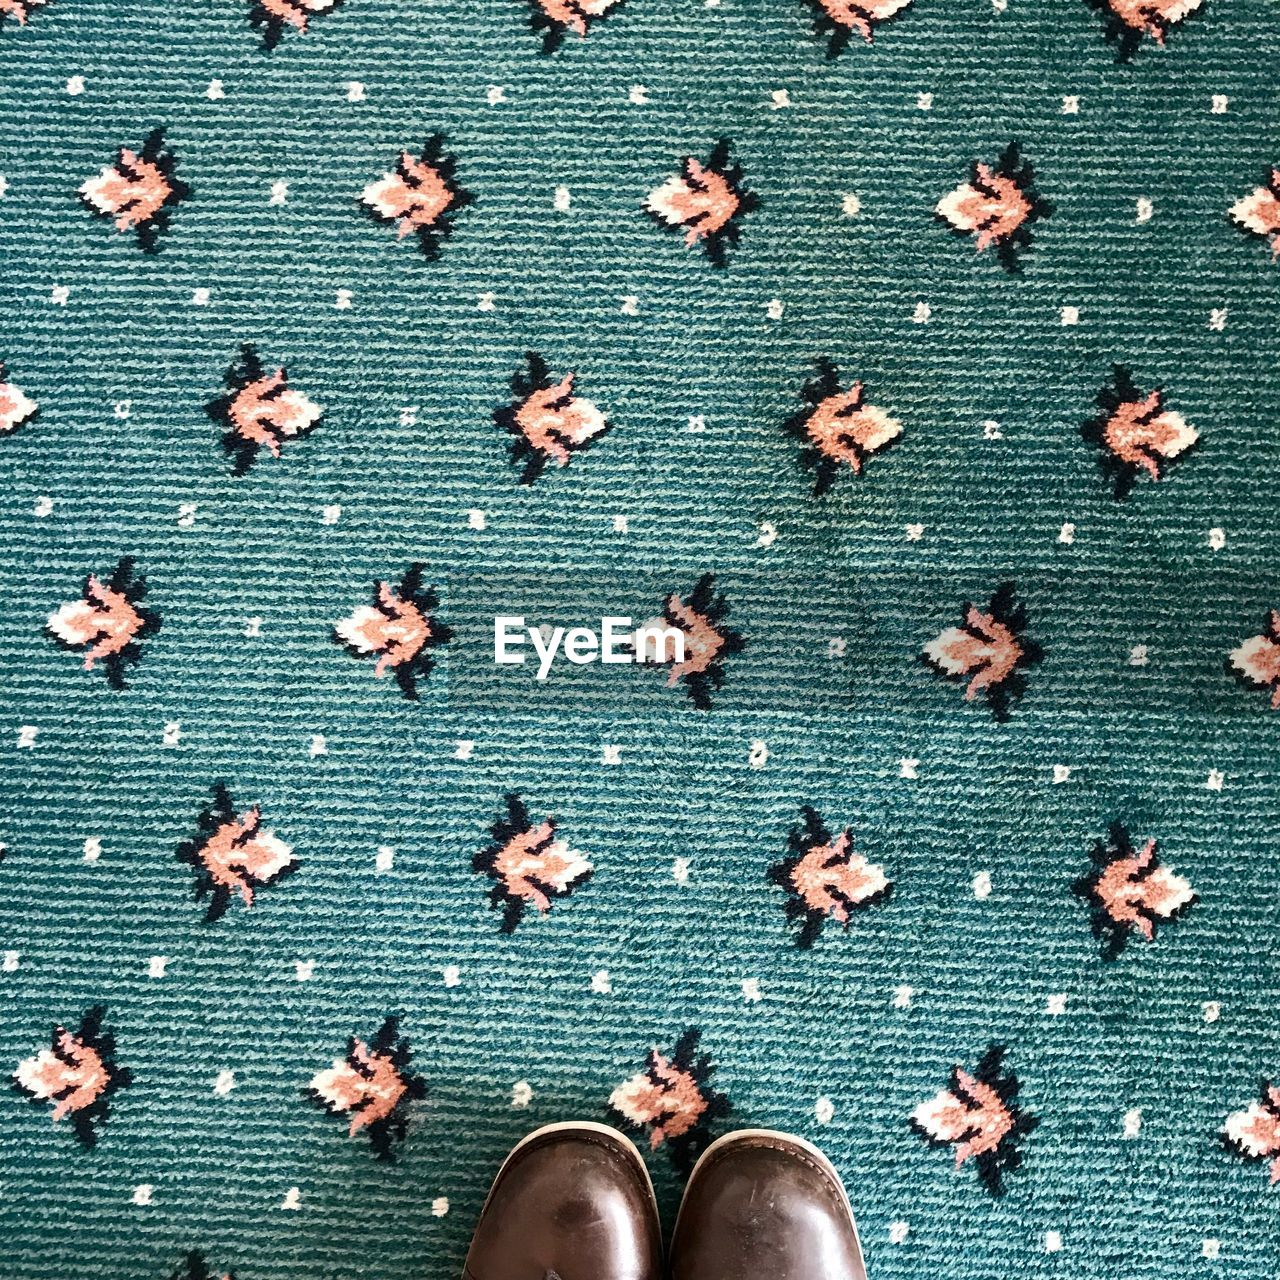 Directly above shot of shoes on carpet